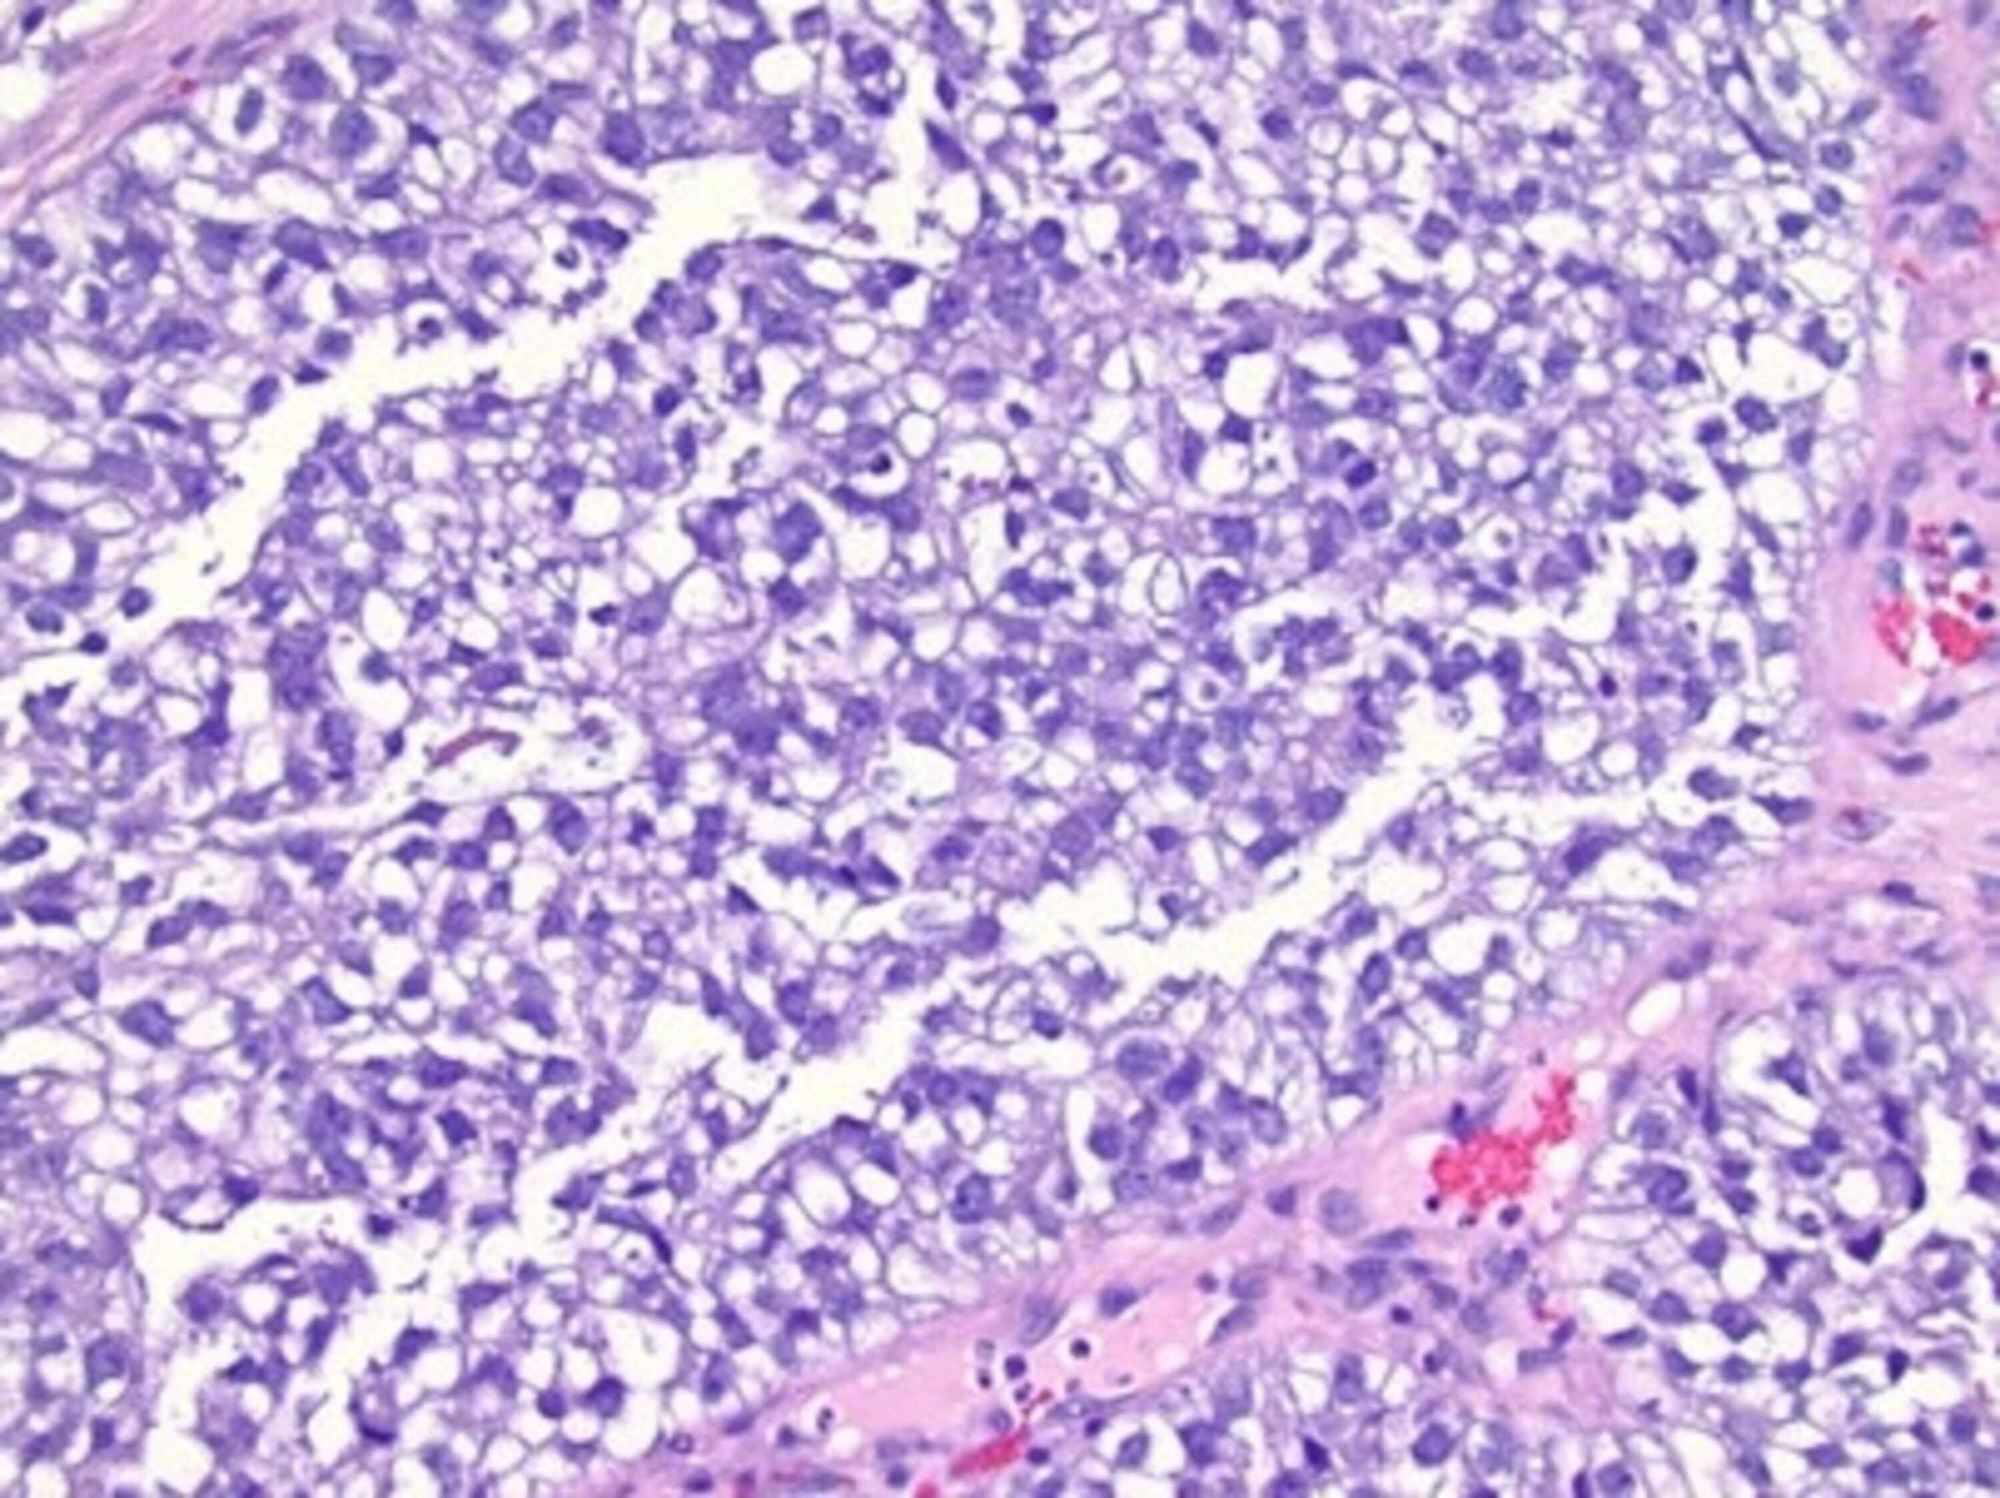 Cureus A Rare Case Of Clear Cell Adenocarcinoma Of The Cervix With No Intrauterine Diethylstilbestrol Exposure